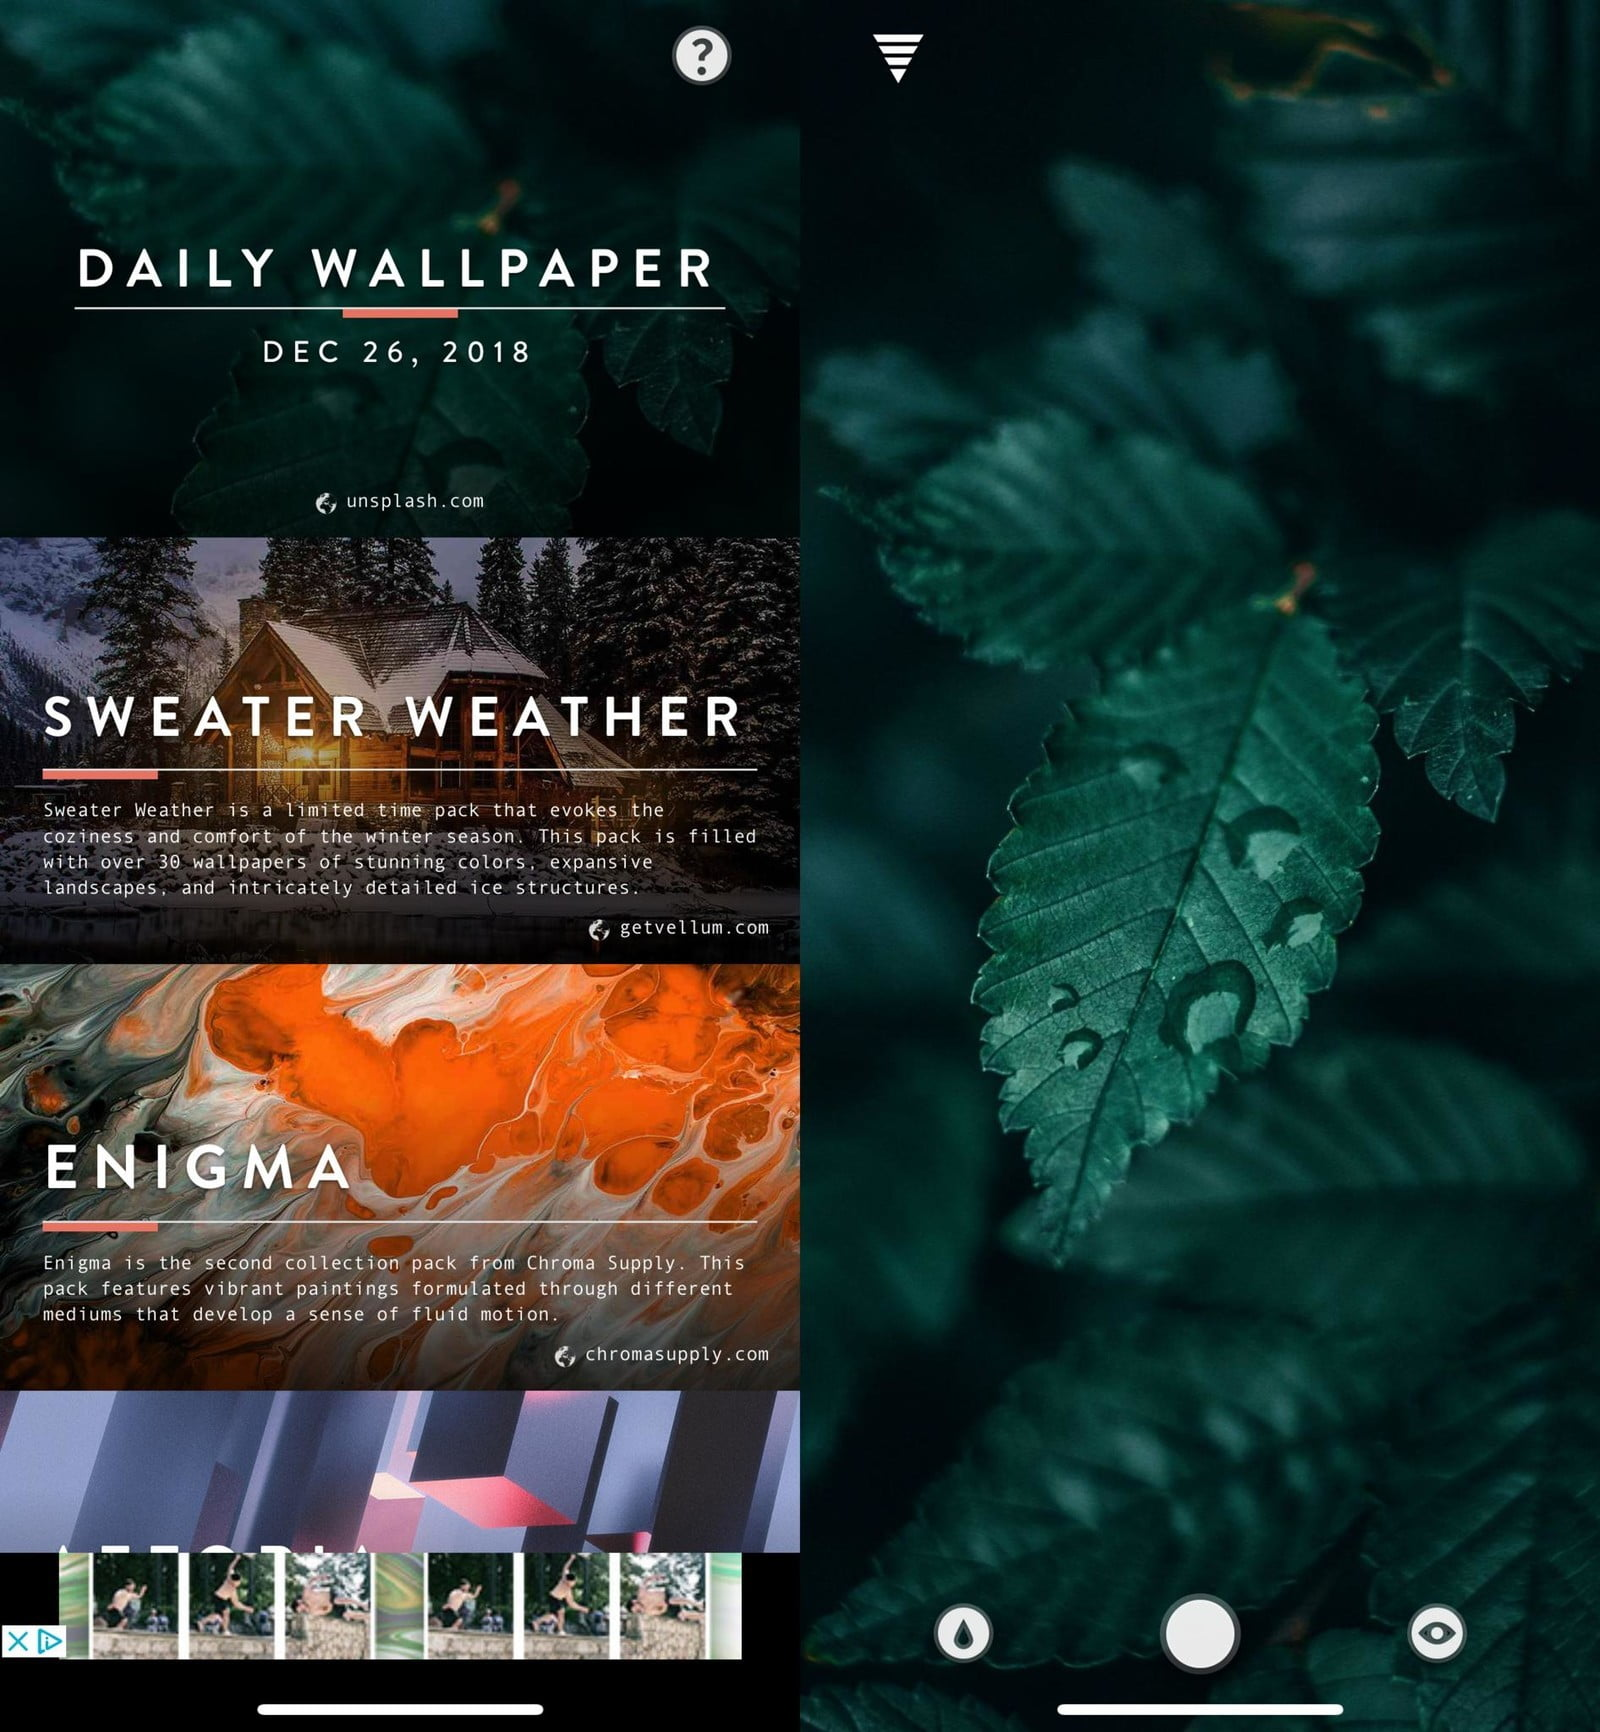 Download the Best Wallpapers with HD Wallpapers for iPhone and iPad